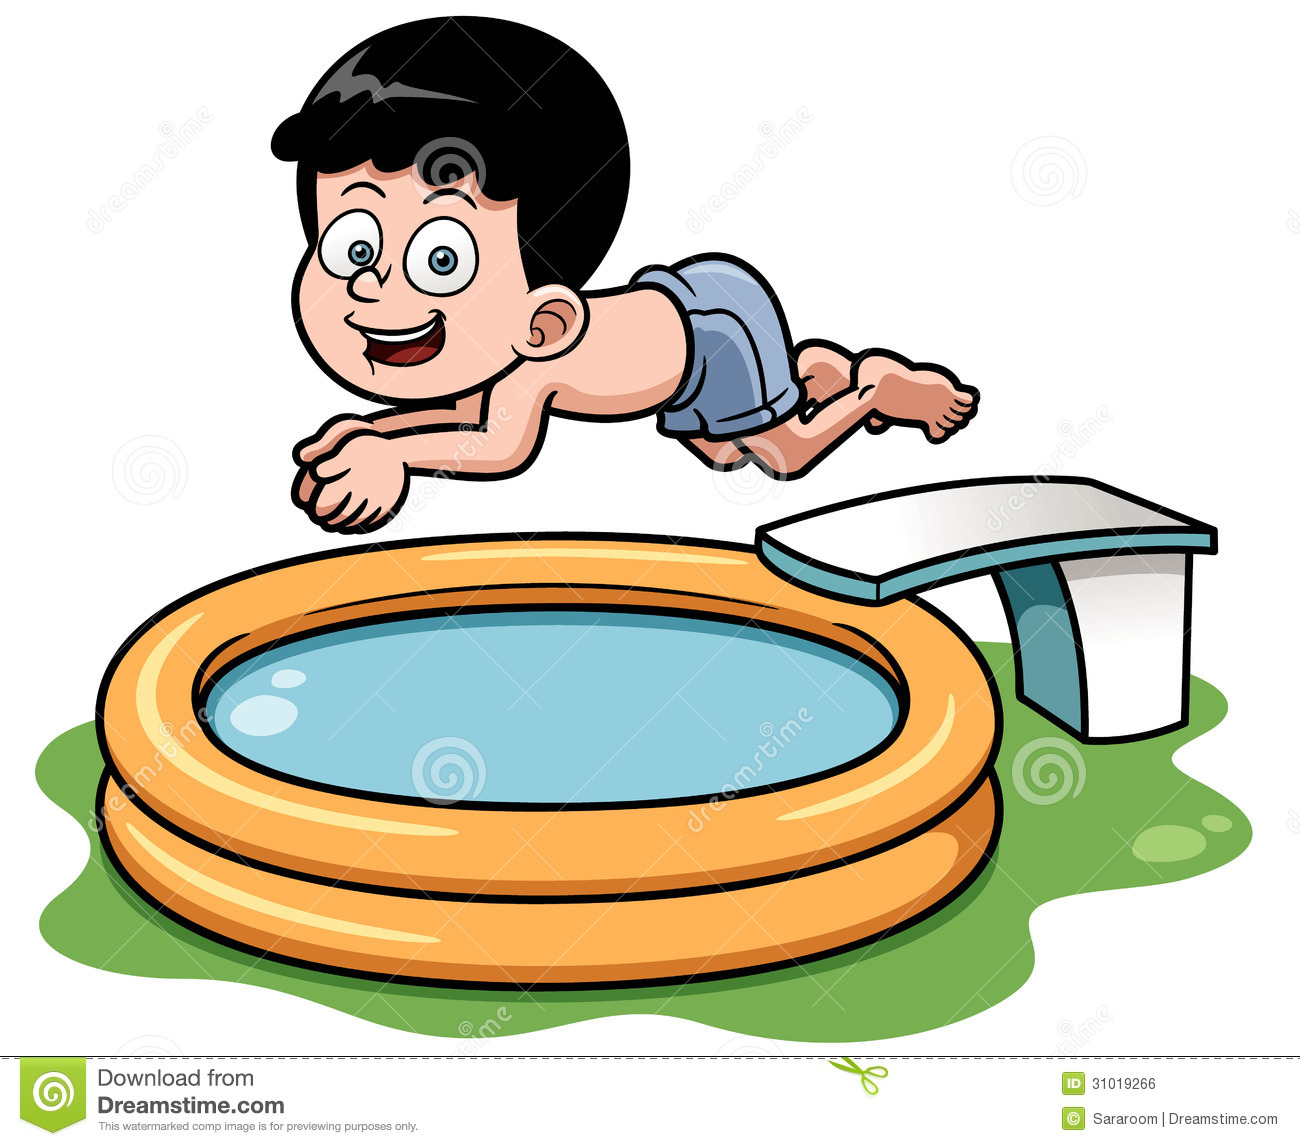 Swimming Pool Cartoon Clipart - Clipart Kid